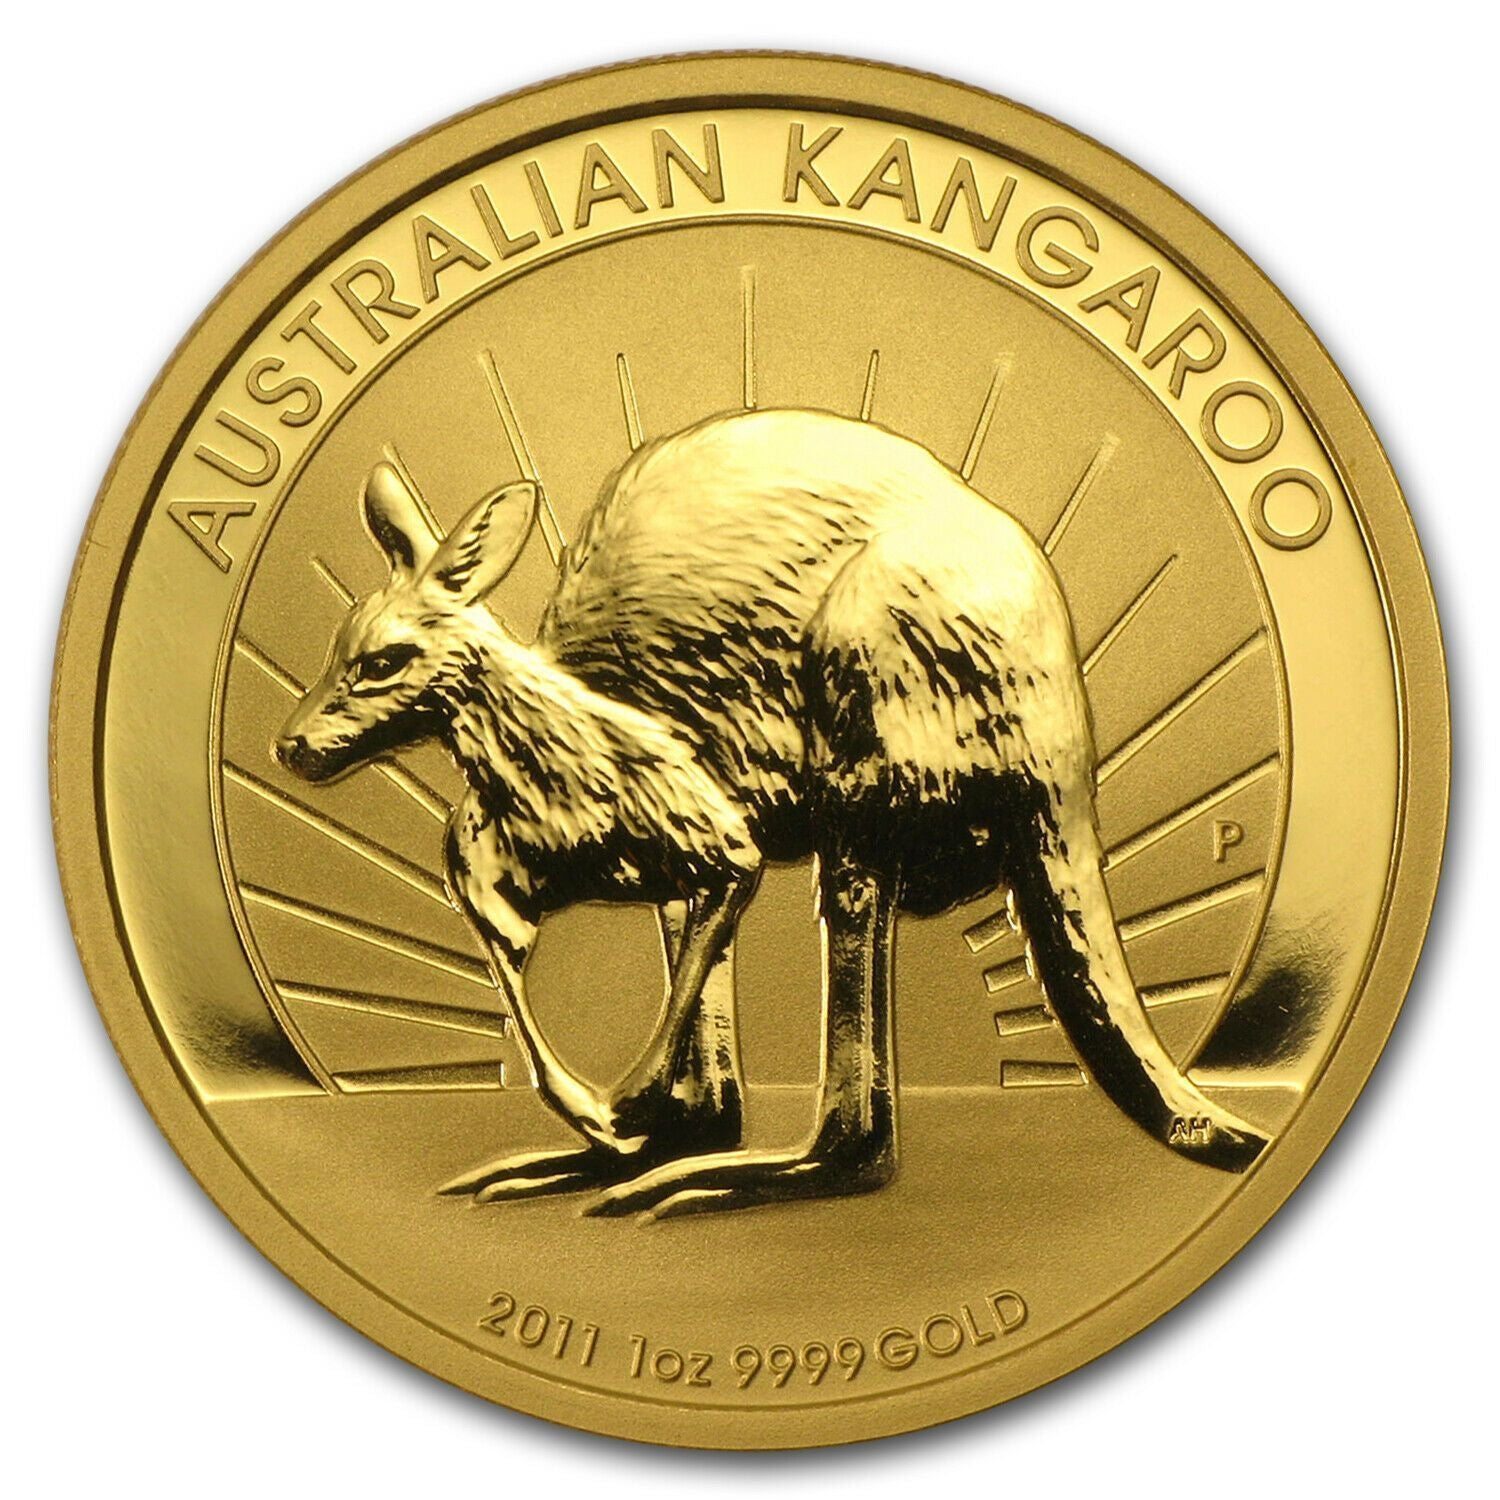 (BUY 2 FREE SHIPPING)2011 Australian Gold Kangaroo Coin